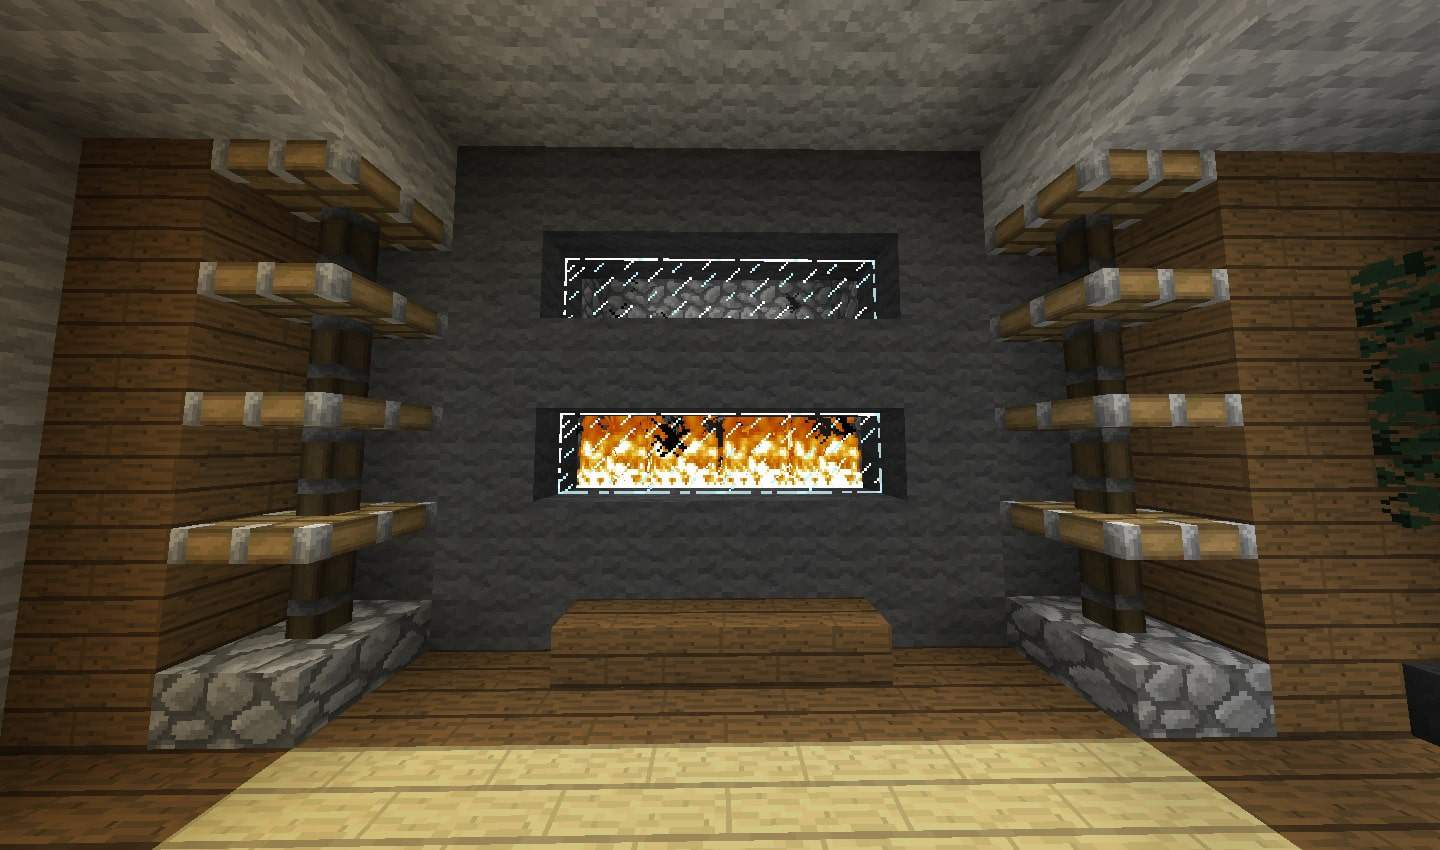 attic craft room ideas - 9 Fireplace Ideas – Minecraft Building Inc